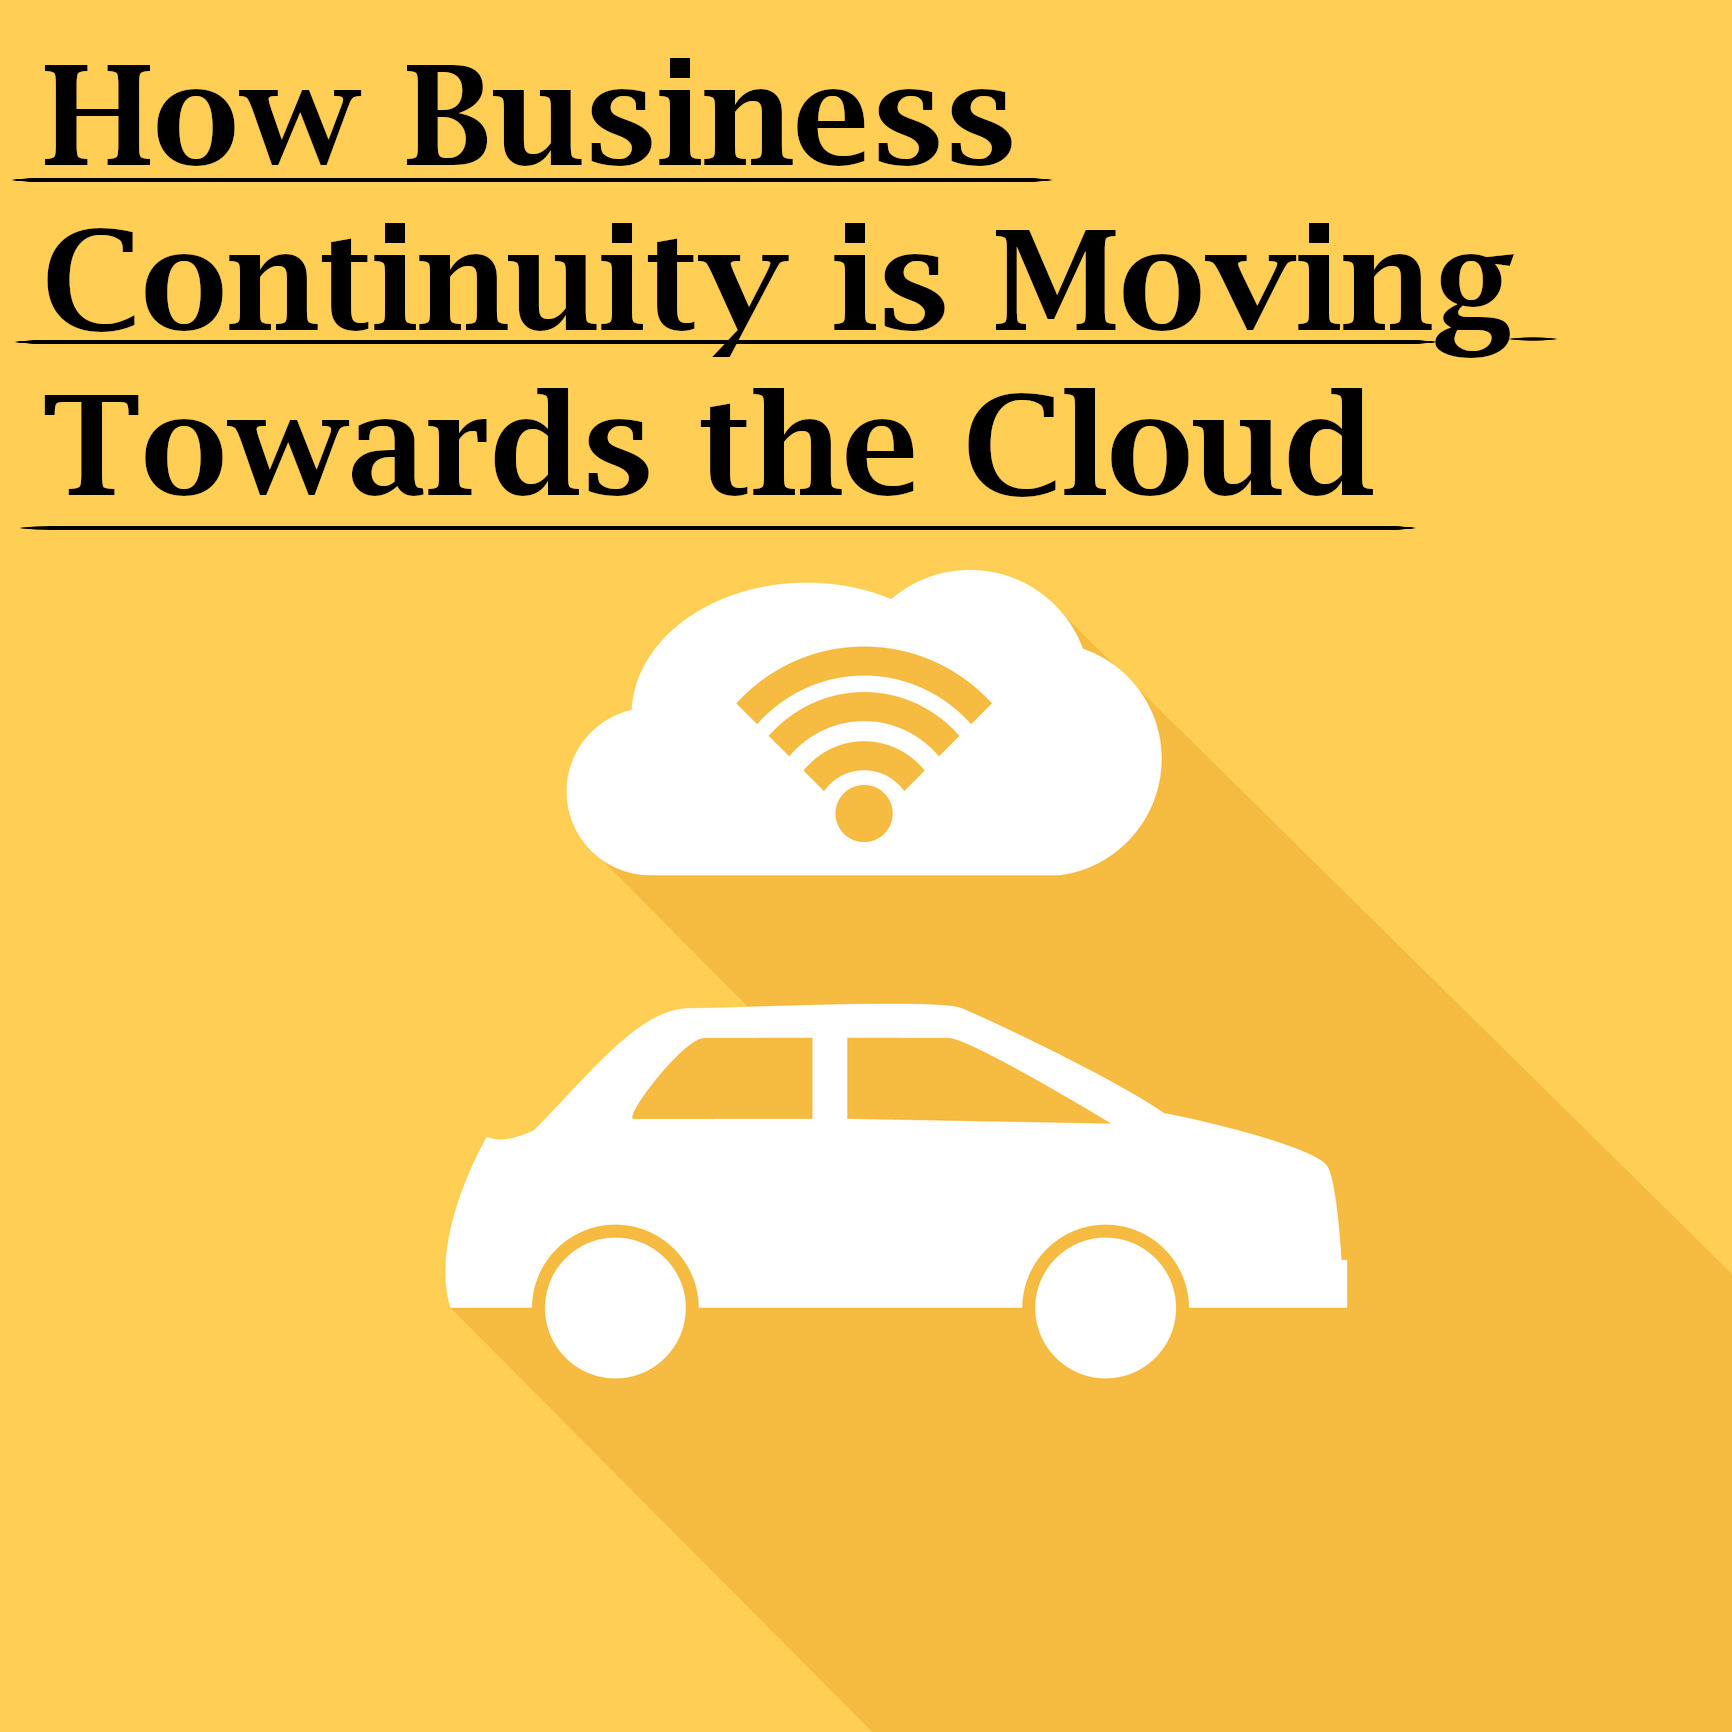 Graphic of car with cloud above, text reads: How Business Continuity is moving towards the cloud.